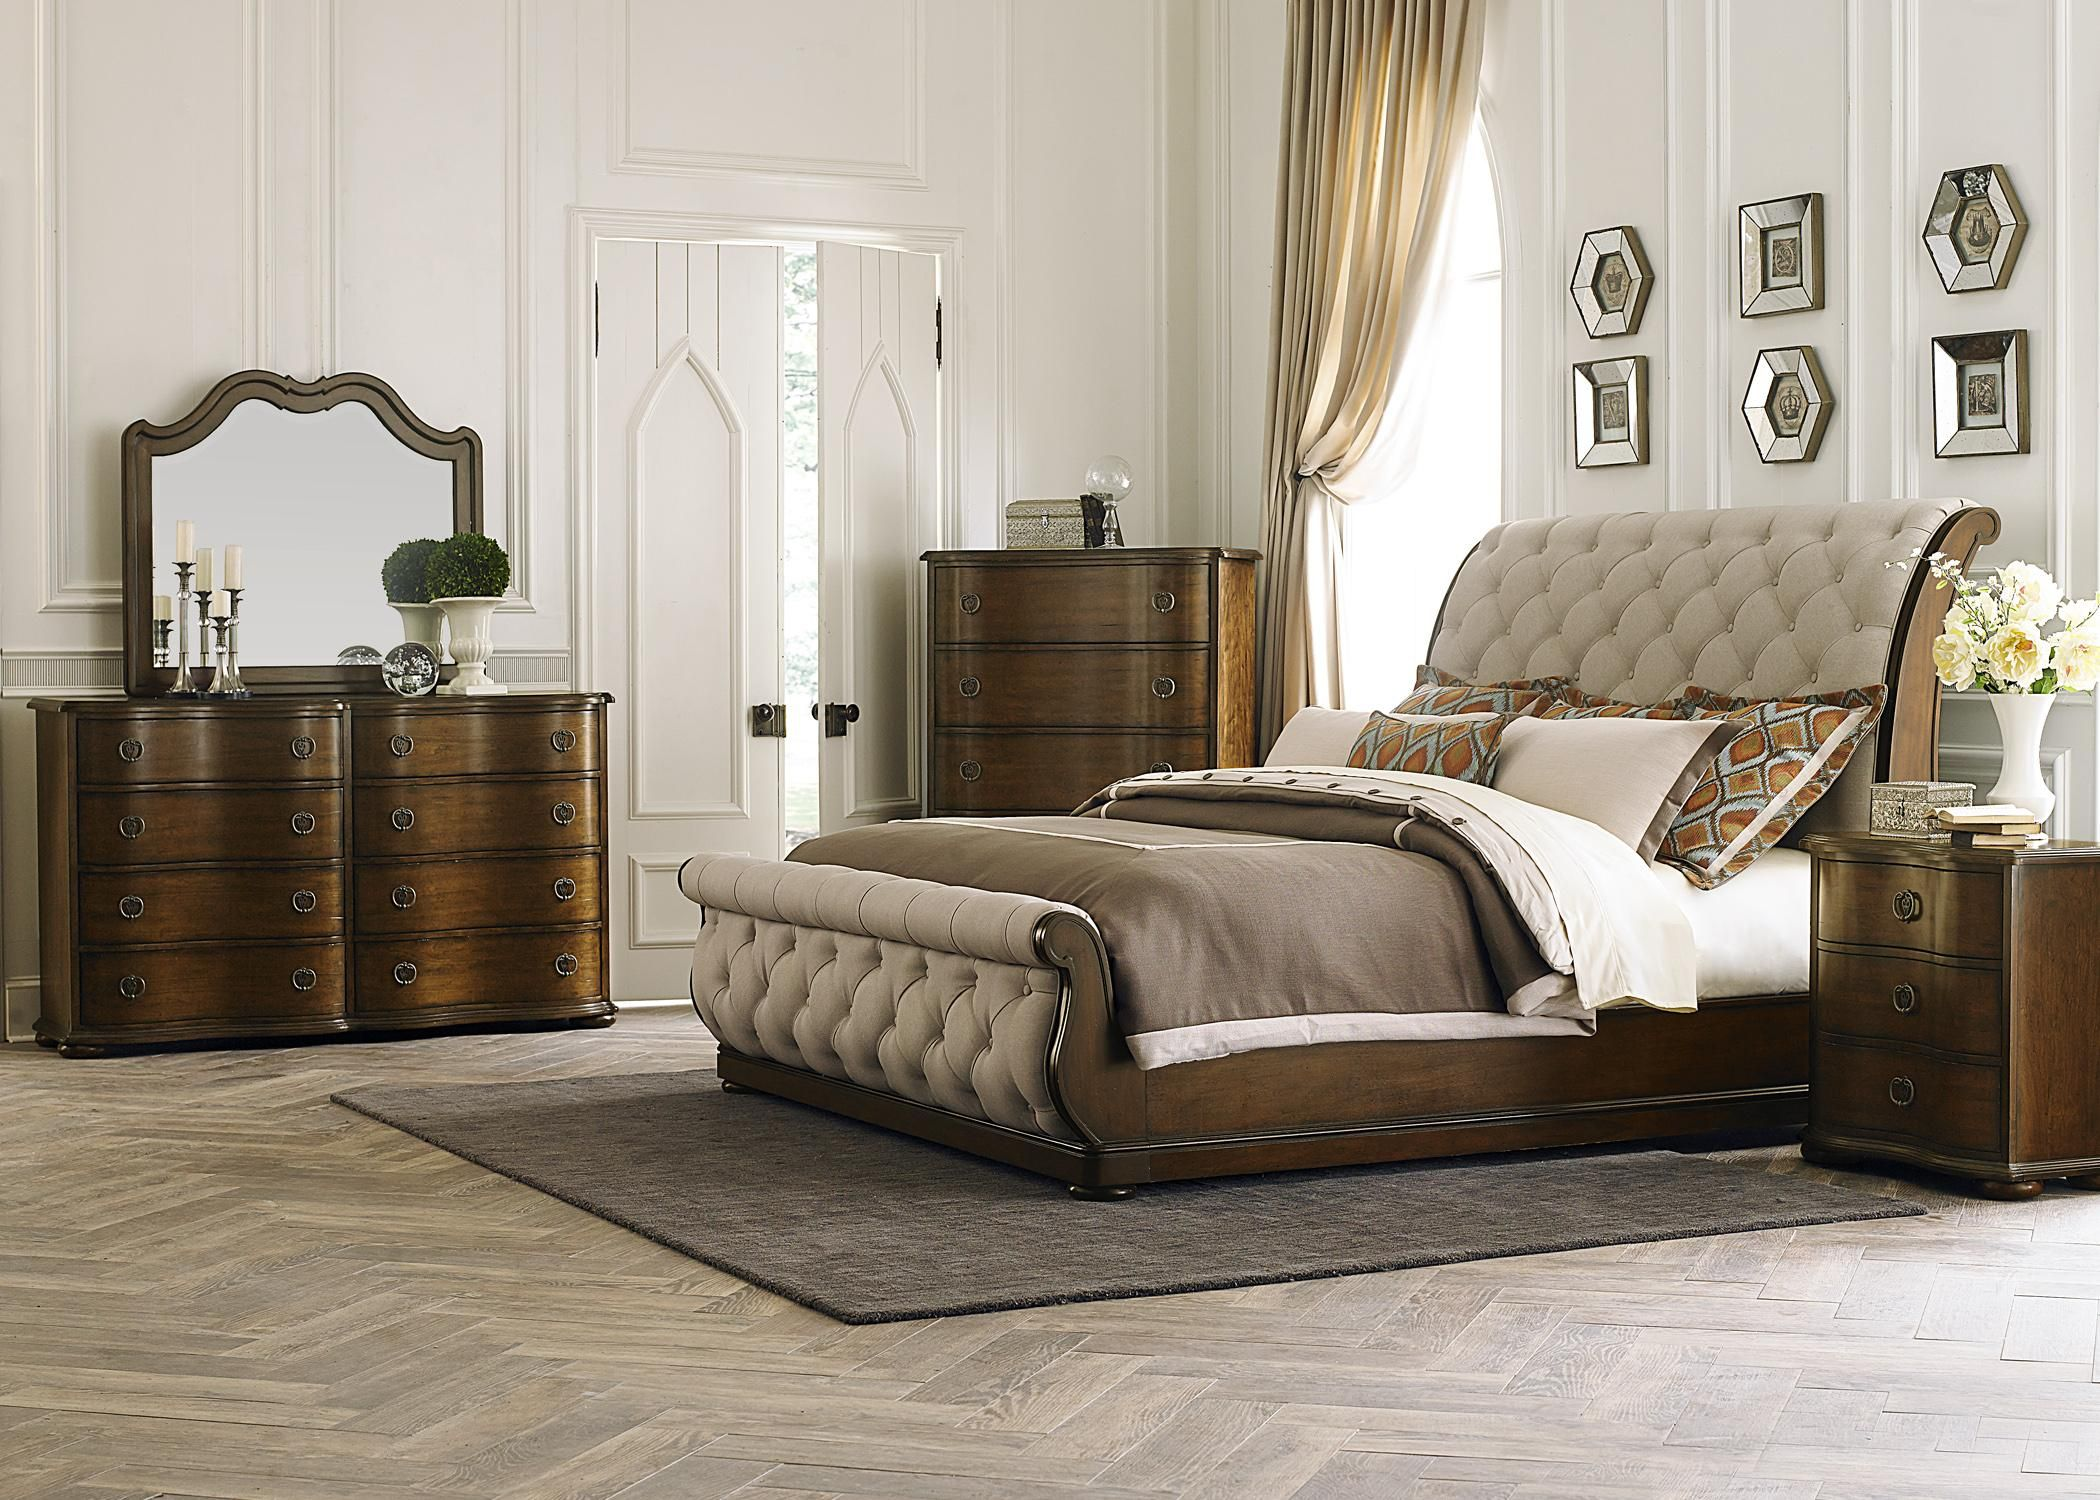 Cotswold King bedroom group at Royal Furniture Designed by Liberty